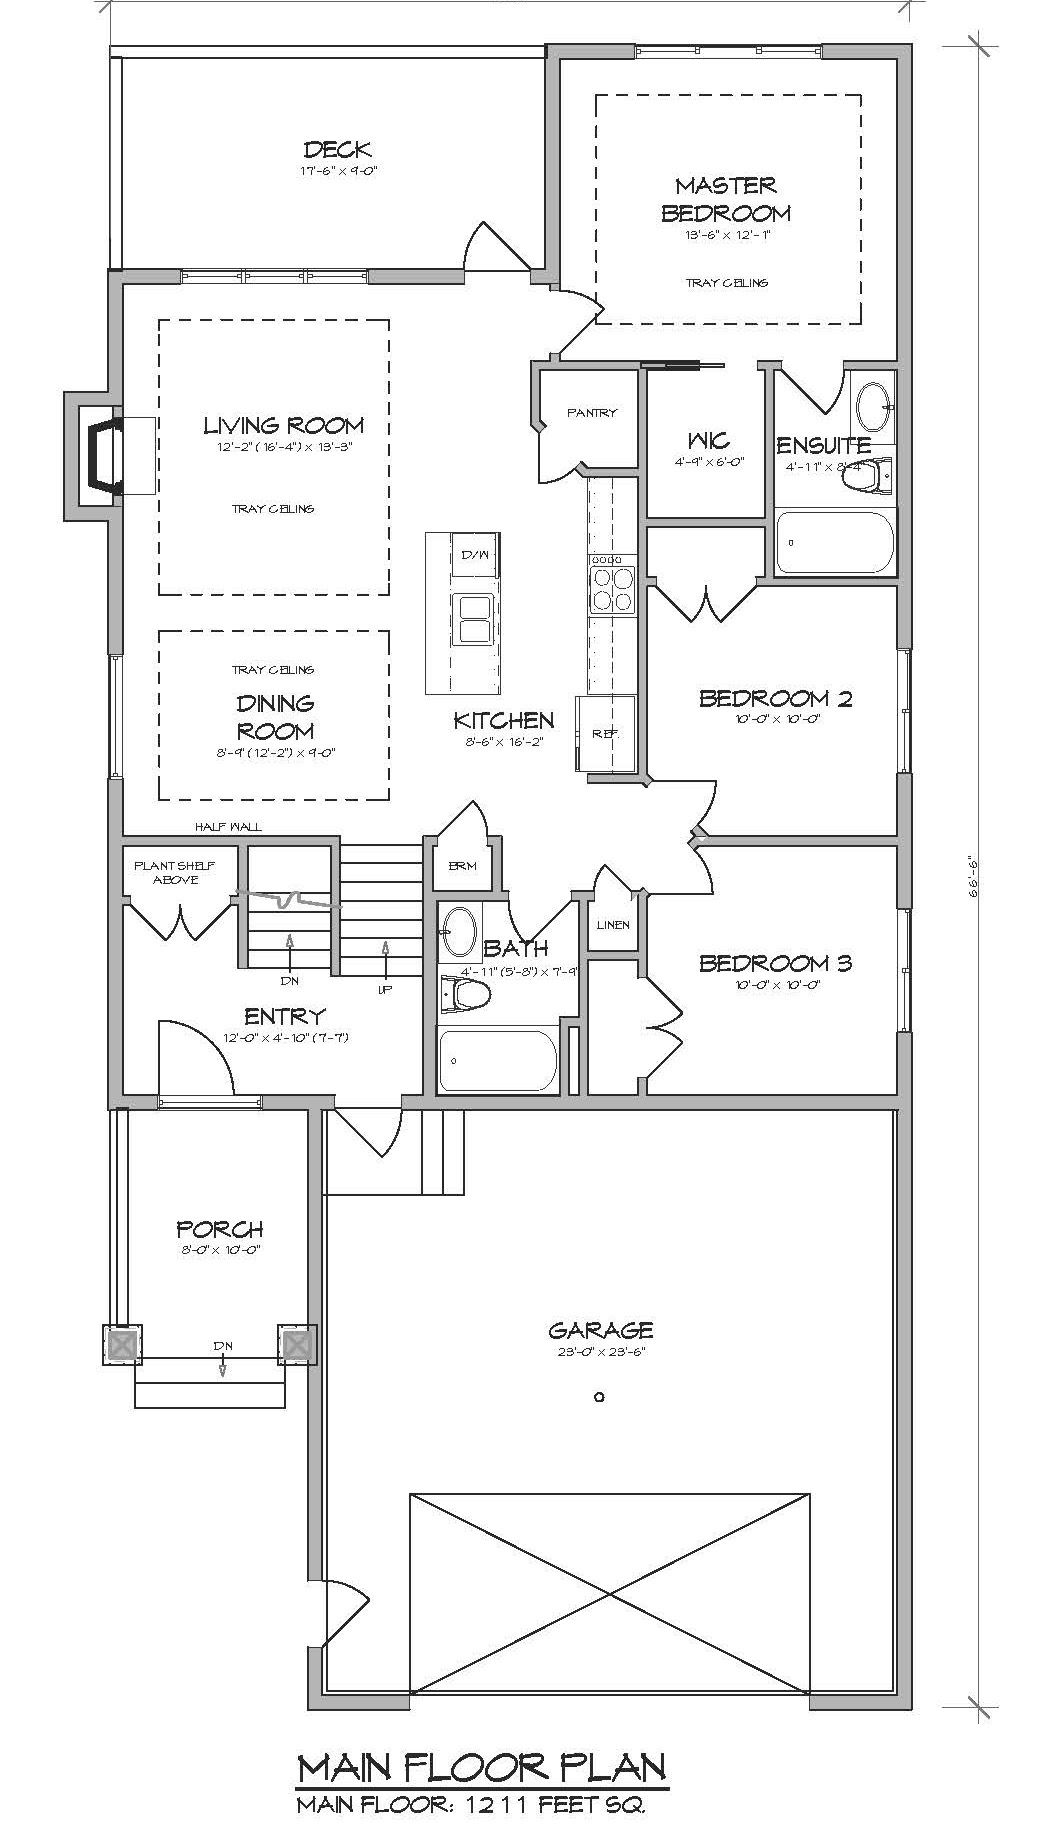 2 Bedroom Bi Level Home With Open Living: Move On Up With The Rise! This 1200 Sq Ft, 3 Bedroom, 2